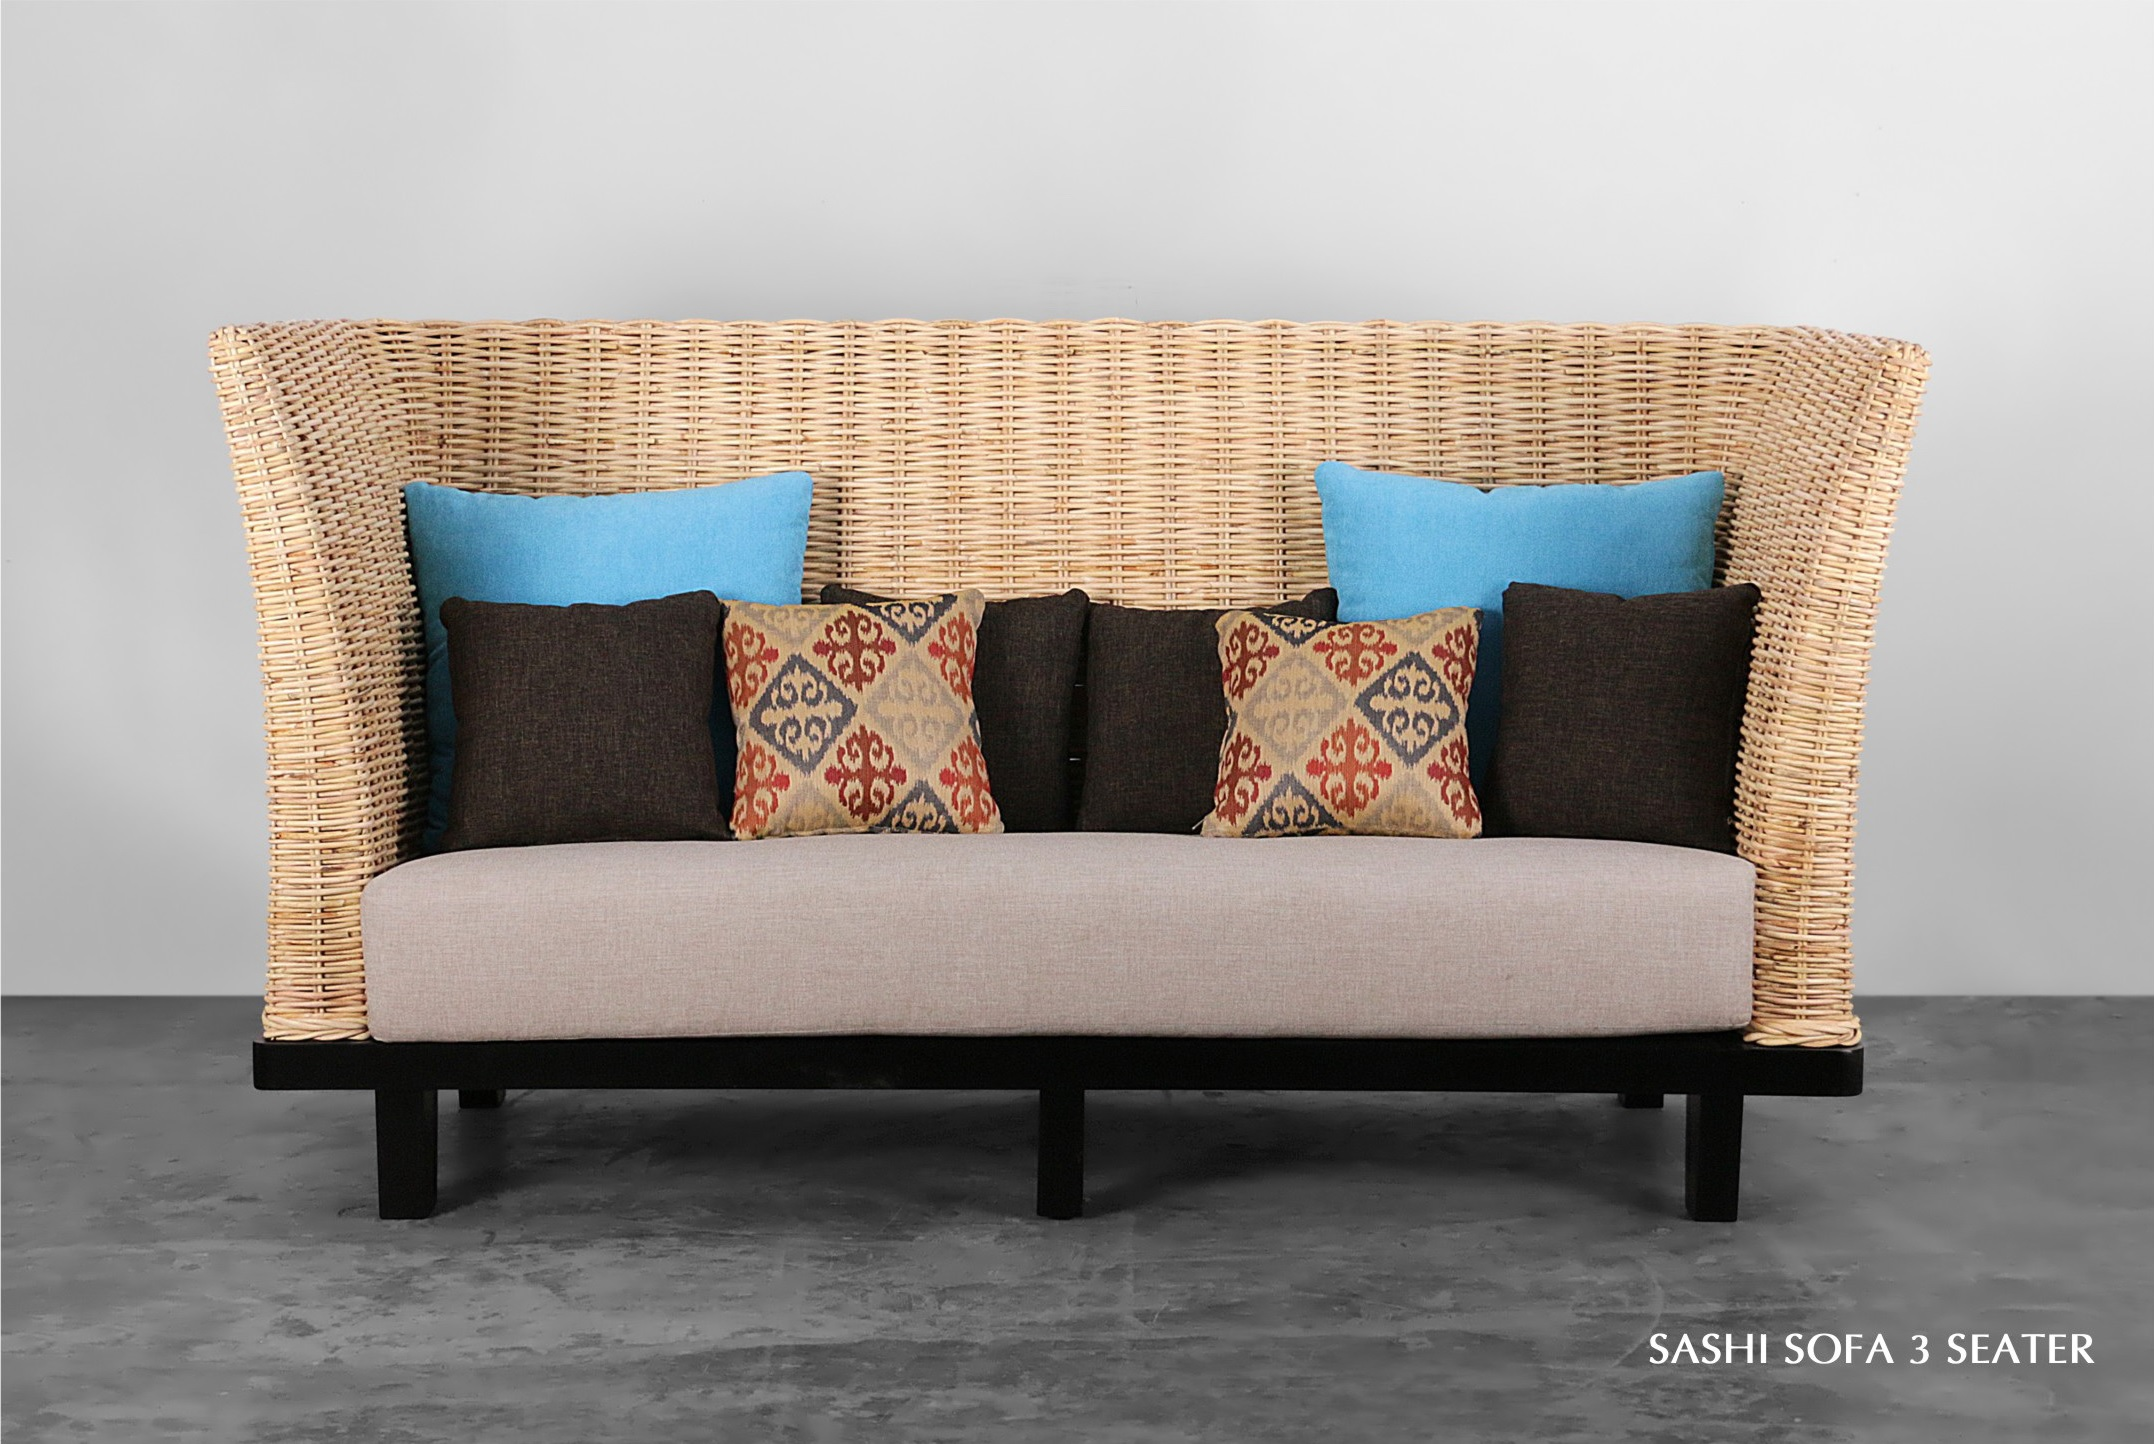 Rattan 3 Piece Sofa Sashi Rattan Sofa 3 Seater Indonesia Teak Java Furniture